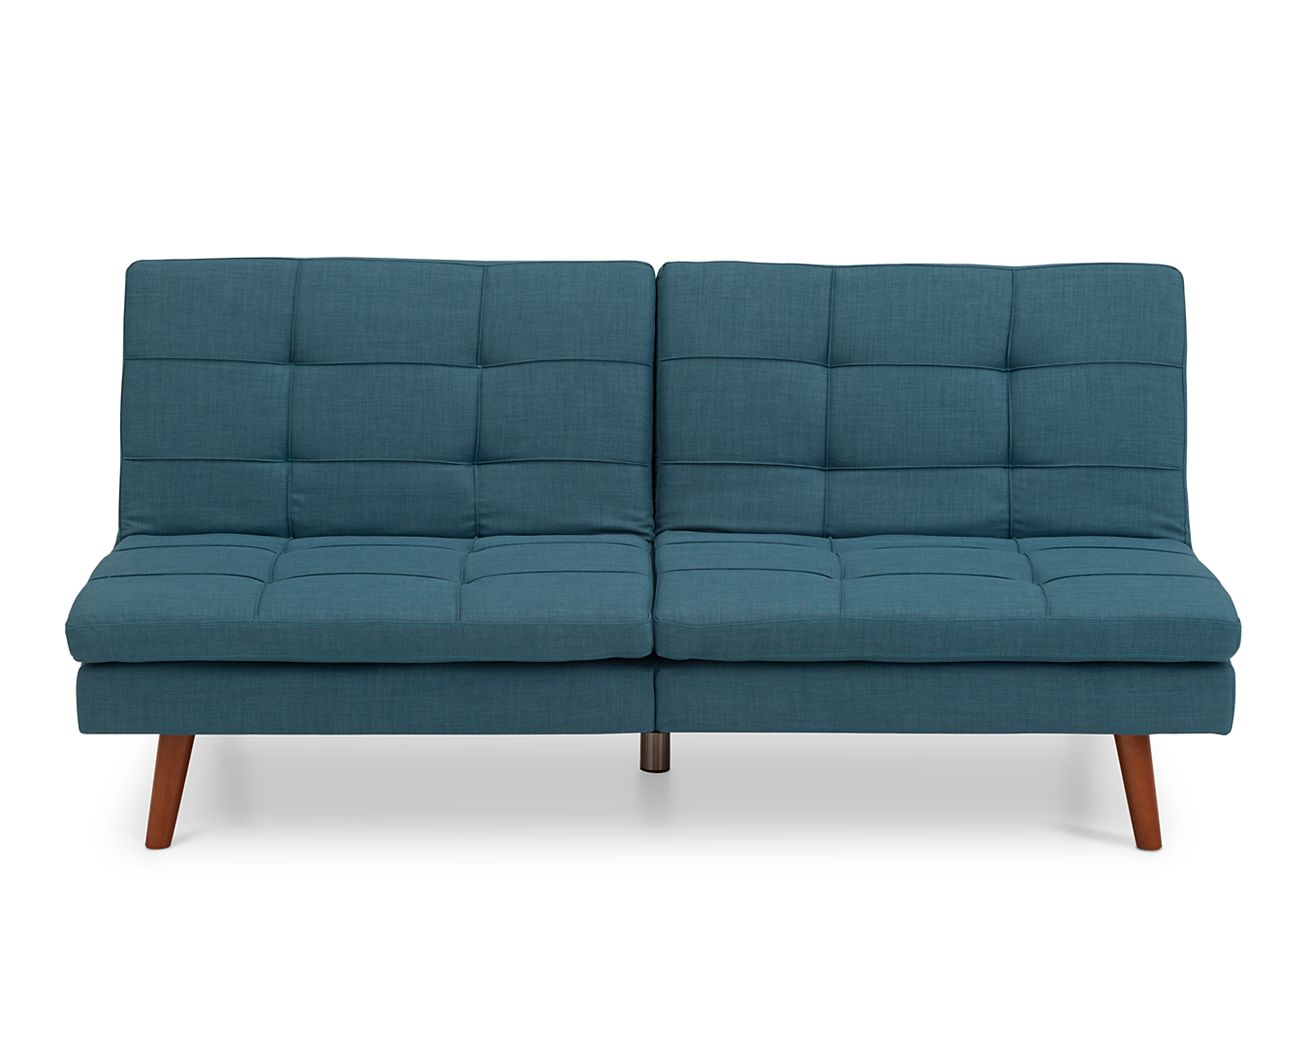 Stylish Futons Comfortable Convertible Seating Furniture Row Futon Bedroom And Living Room Image Collections